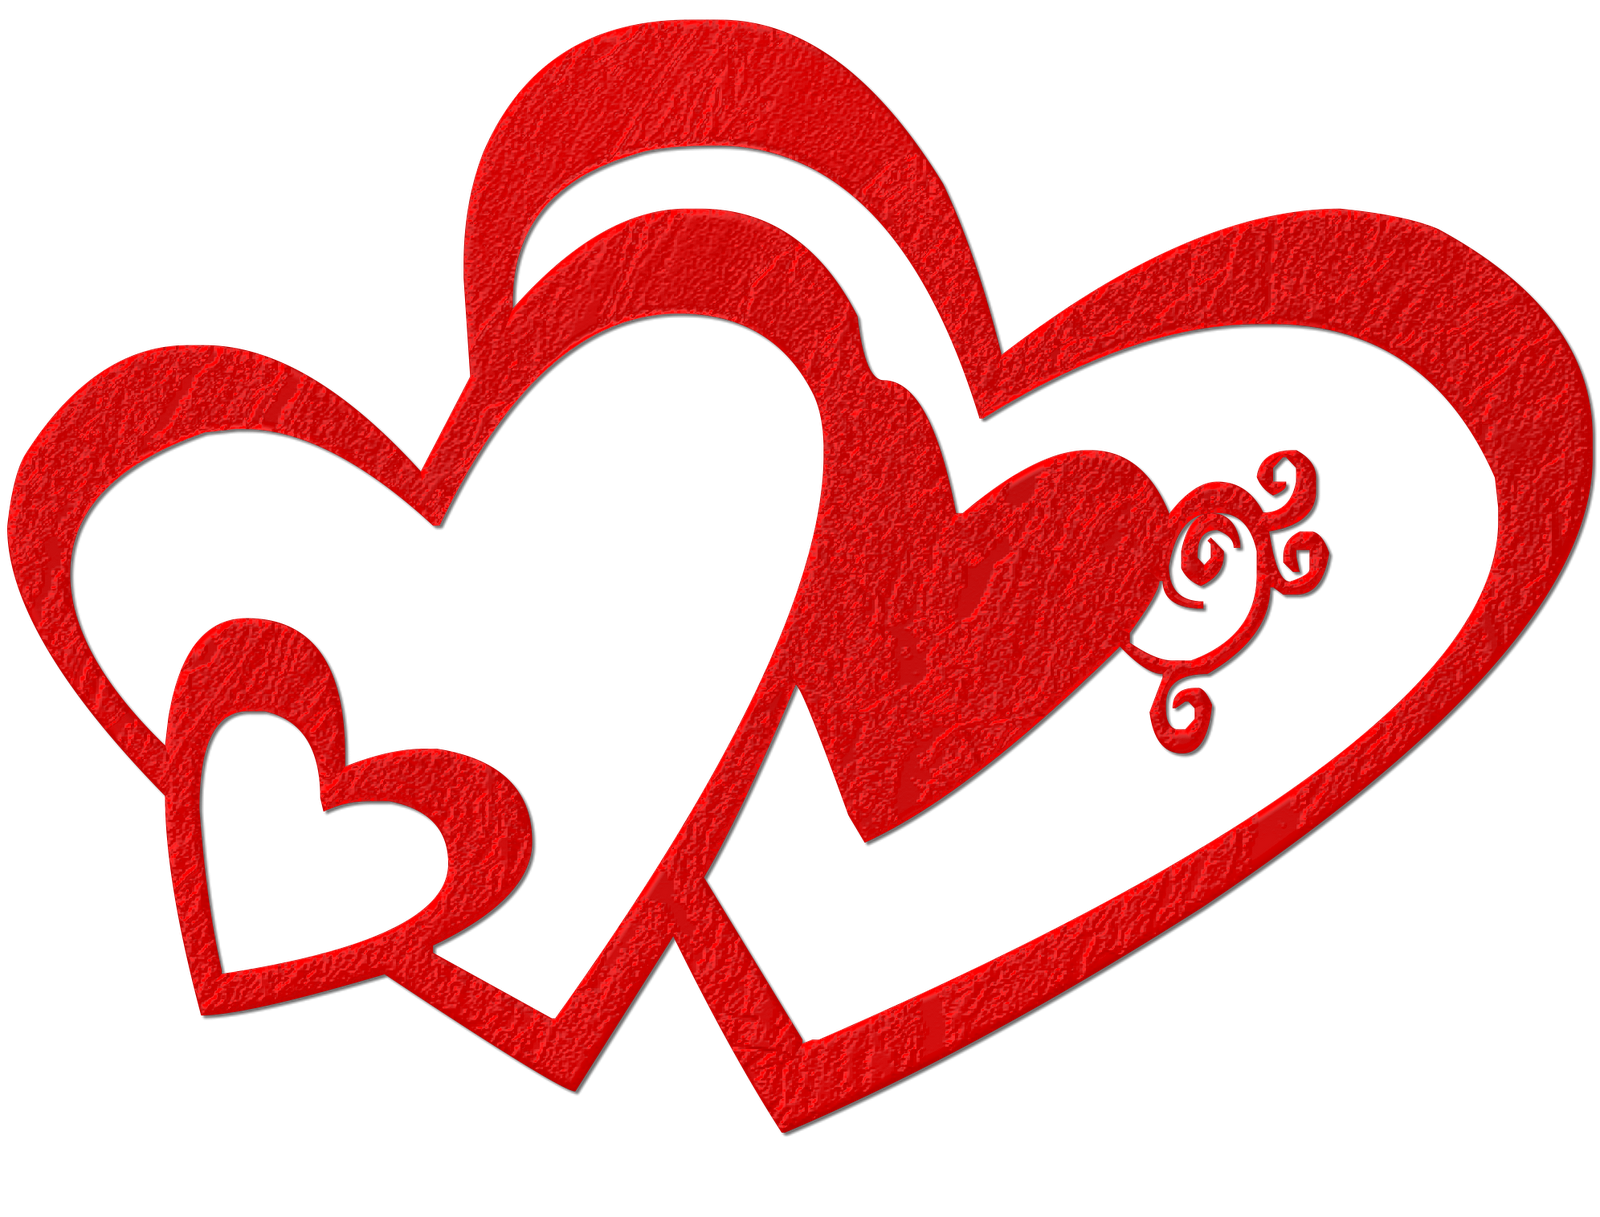 Valentines Day Clipart-Clipartlook.com-1-Valentines Day Clipart-Clipartlook.com-1600-0